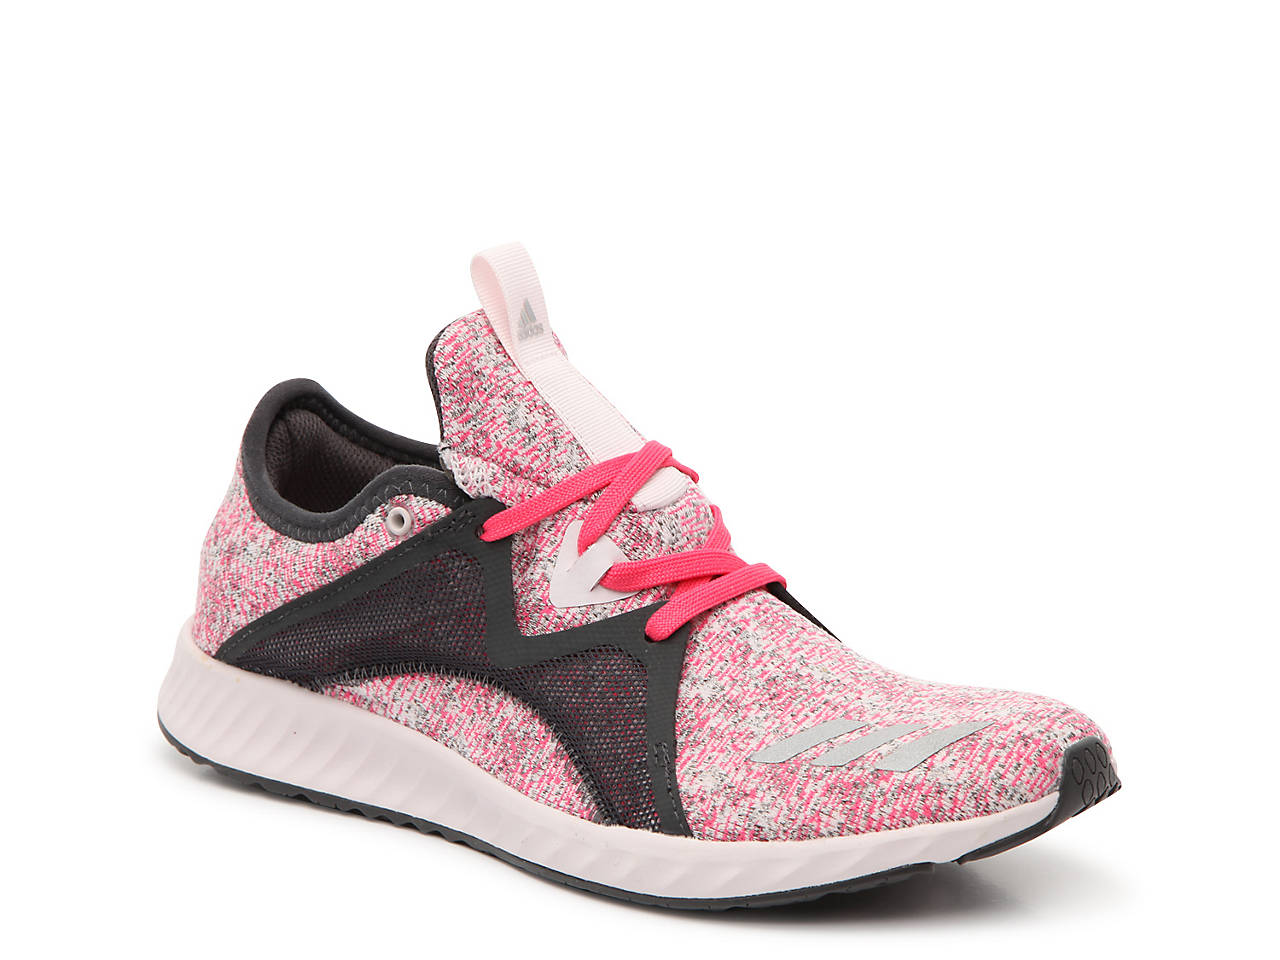 online store 7cc30 e52f2 adidas. Edge Lux 2 Lighweight Running Shoe - Womens